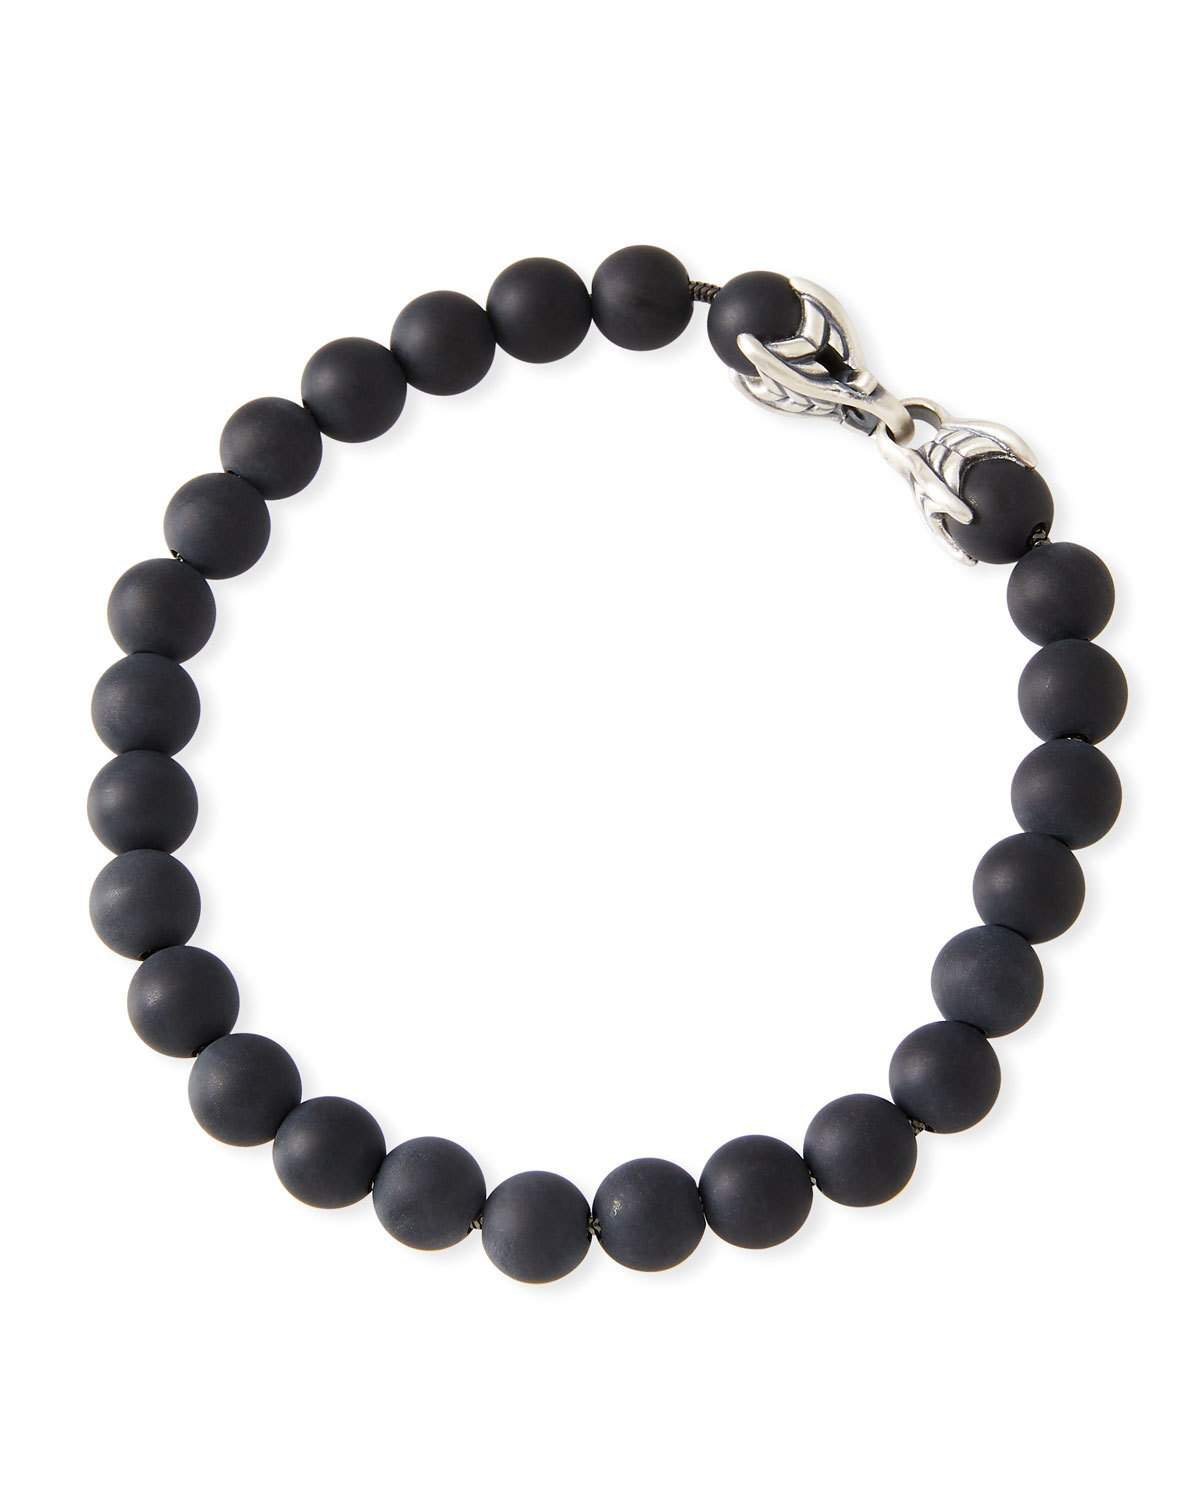 David Yurman Black Onyx Spiritual Beads Bracelet